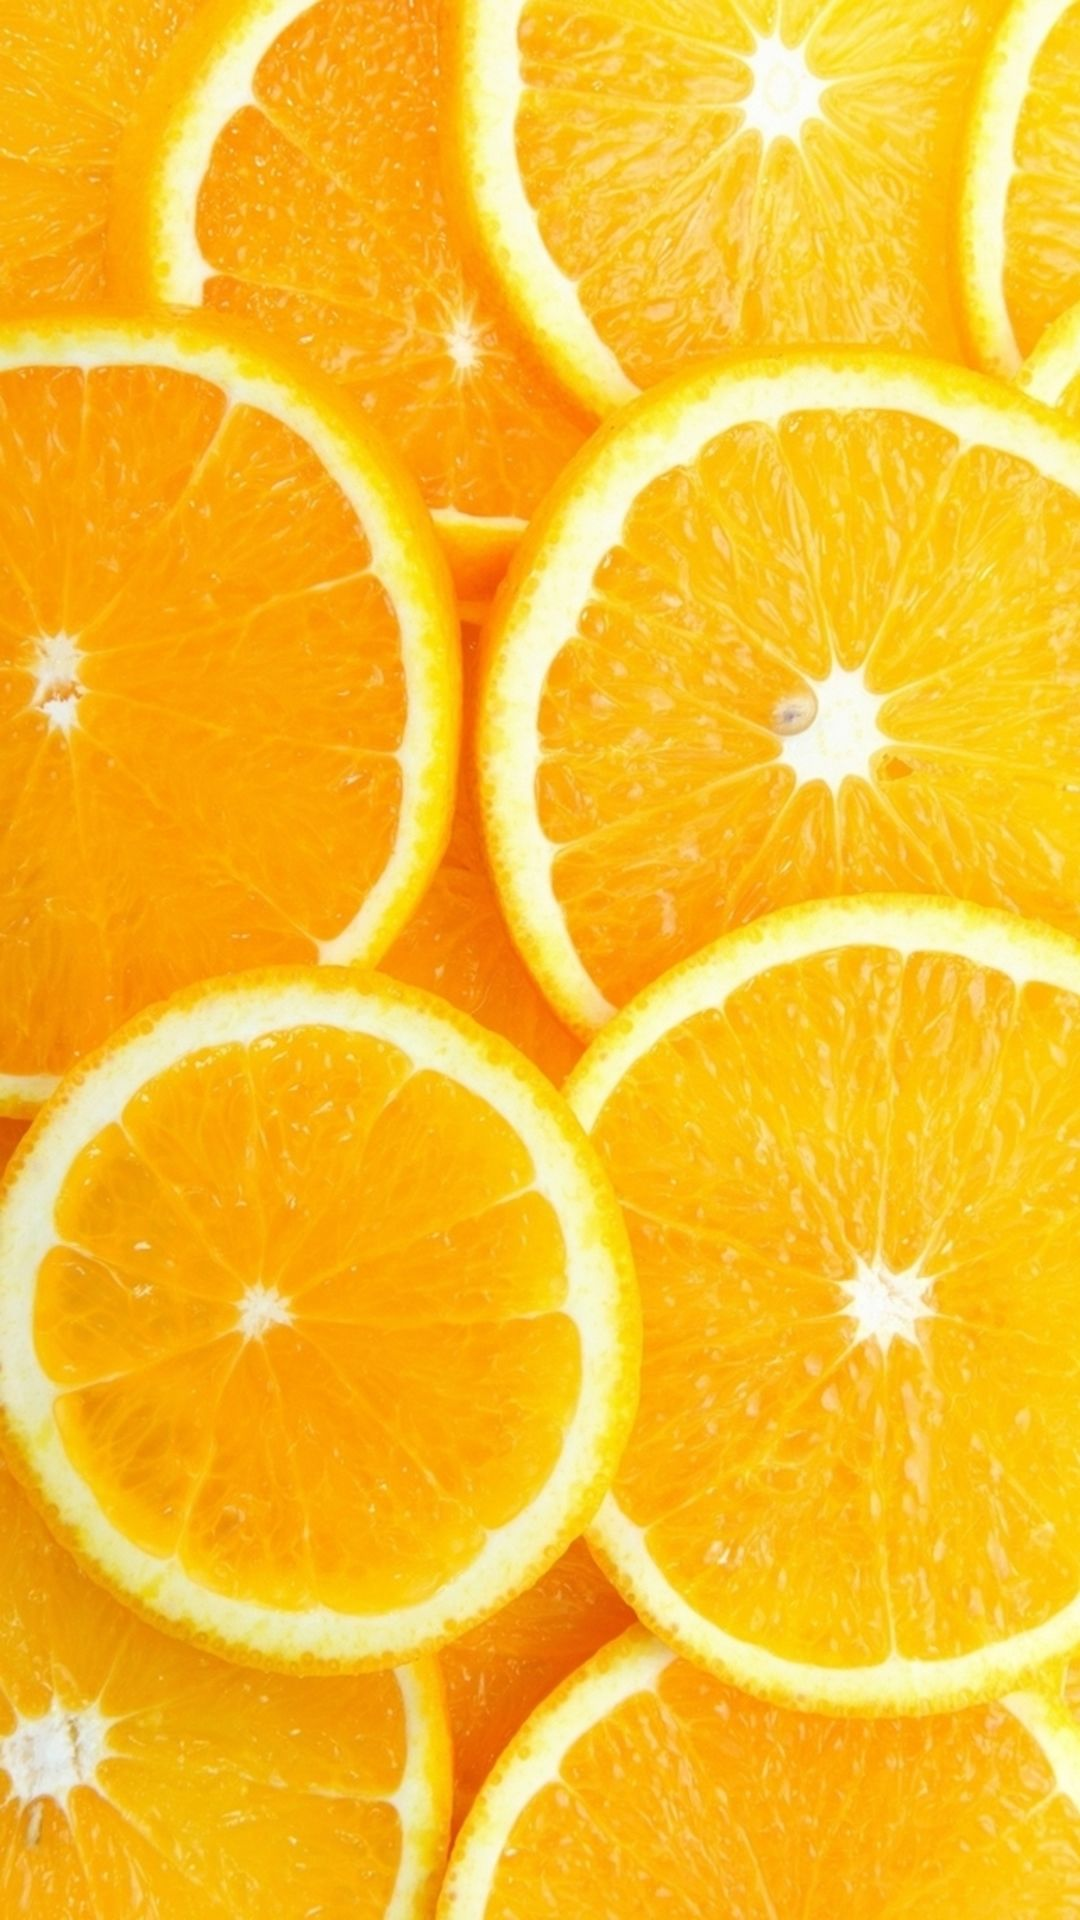 Fruit Orange Slice Overlap Background iPhone 6 plus wallpaper 1080x1920